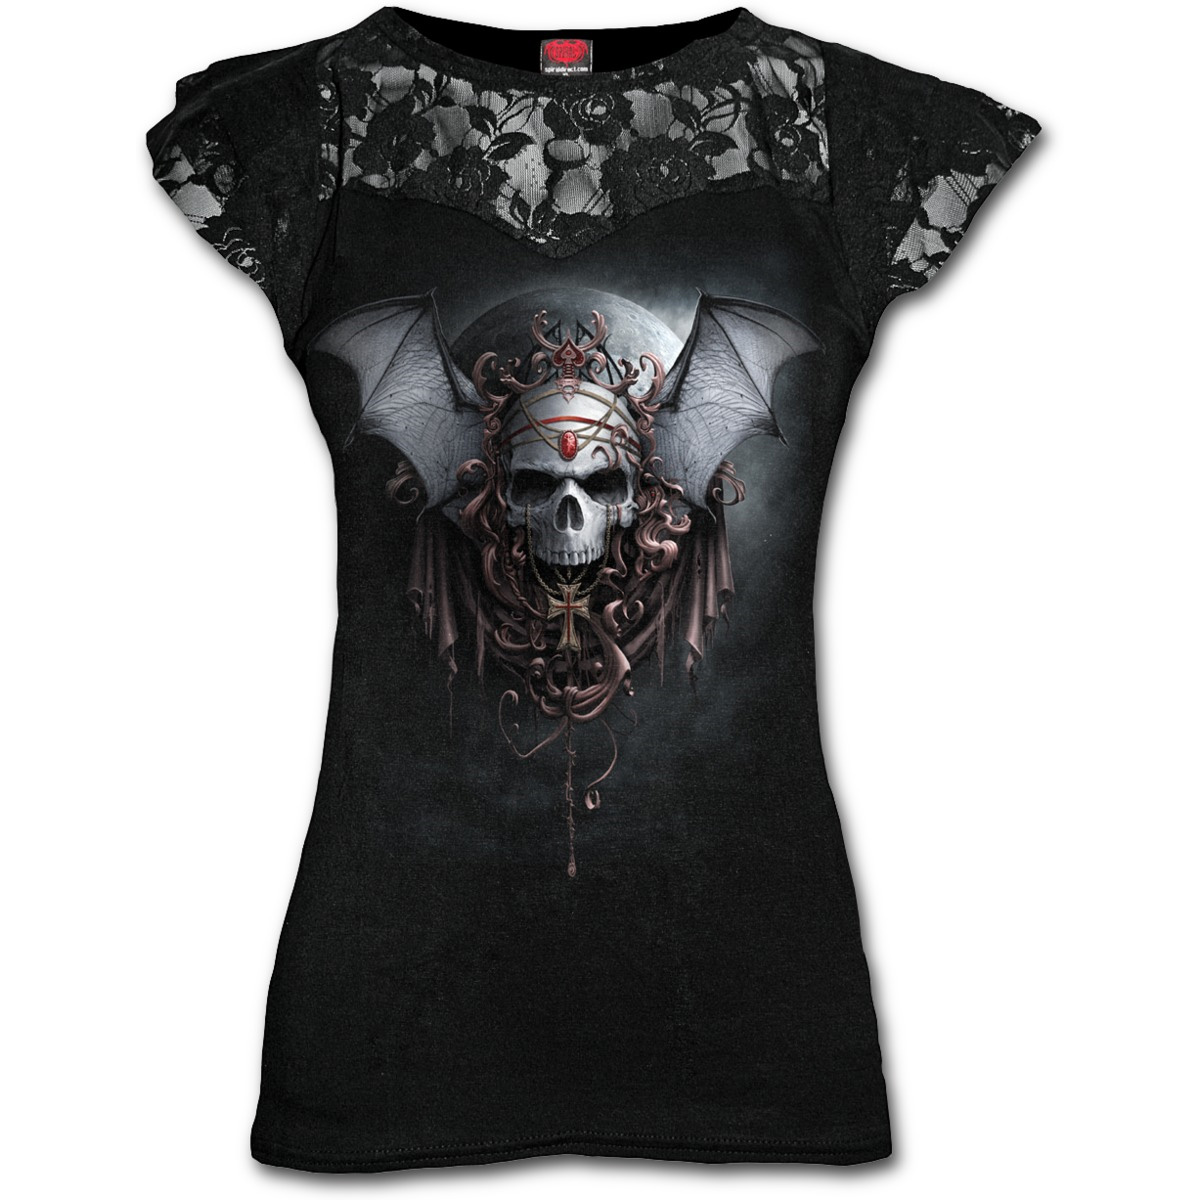 SPIRAL-DIRECT-Ladies-Black-Gothic-GOTH-NIGHTS-Skull-Top-Lace-Bat-All-Sizes thumbnail 5